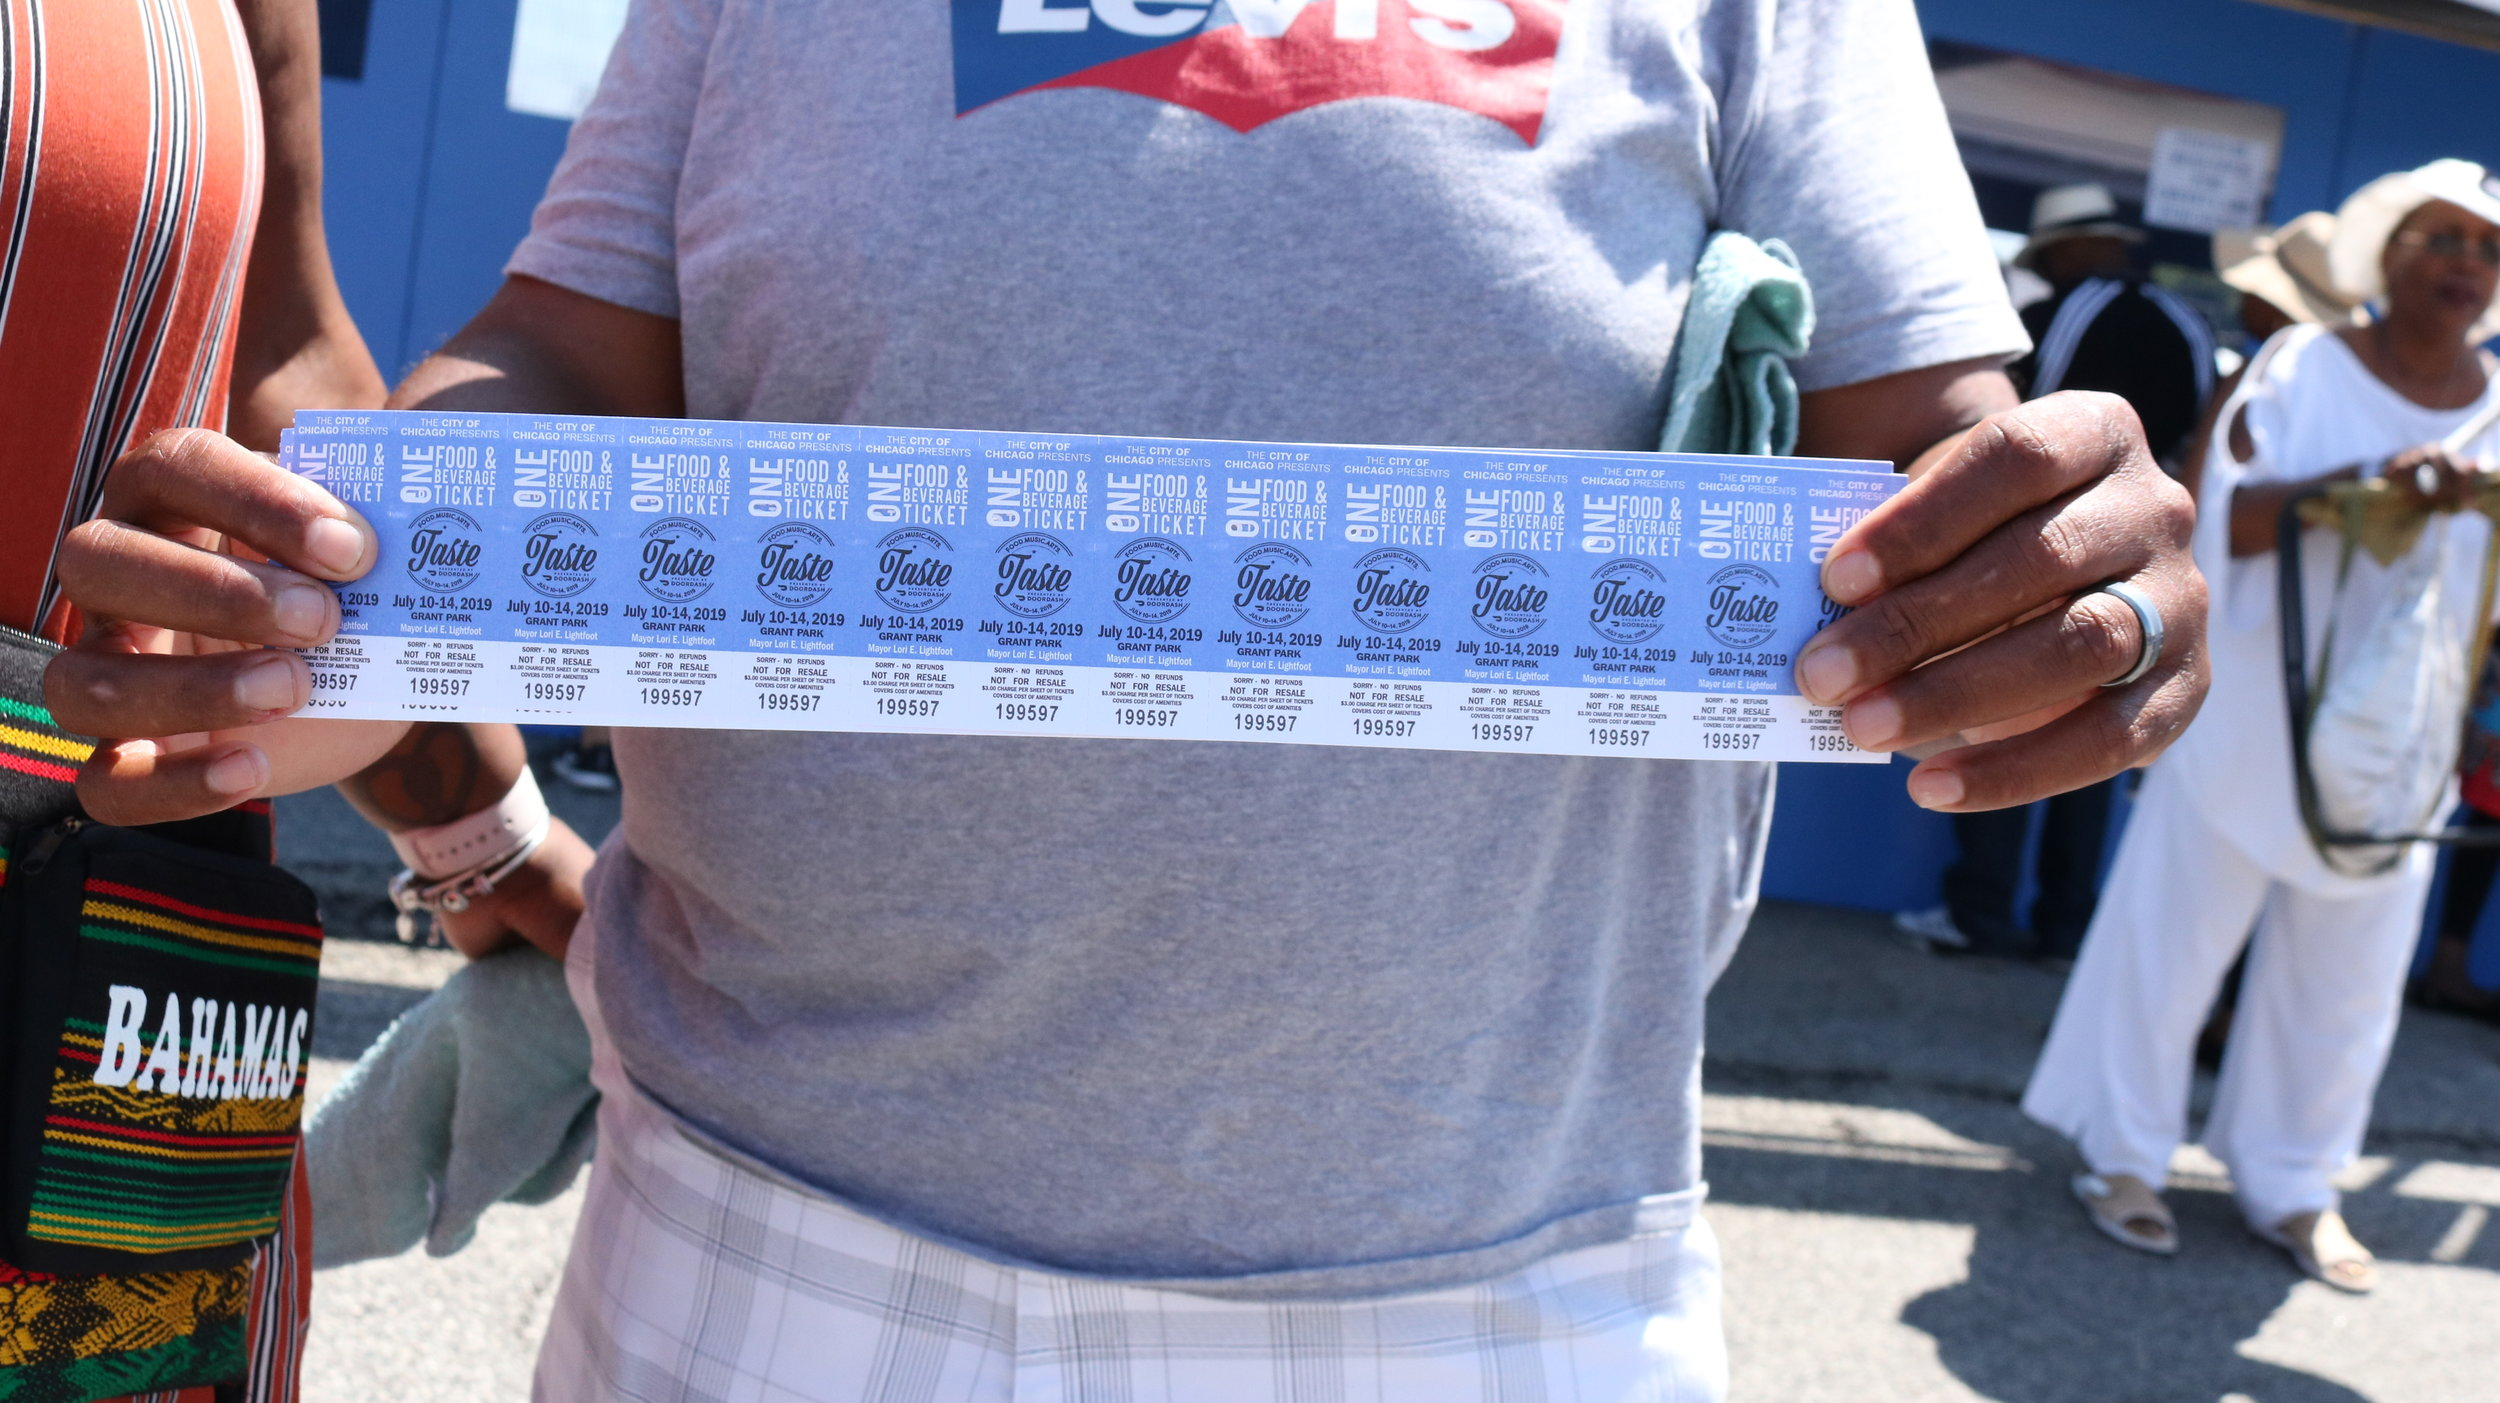 An attendee presenting his tickets at the Taste of Chicago. Photo by Clariza Adao